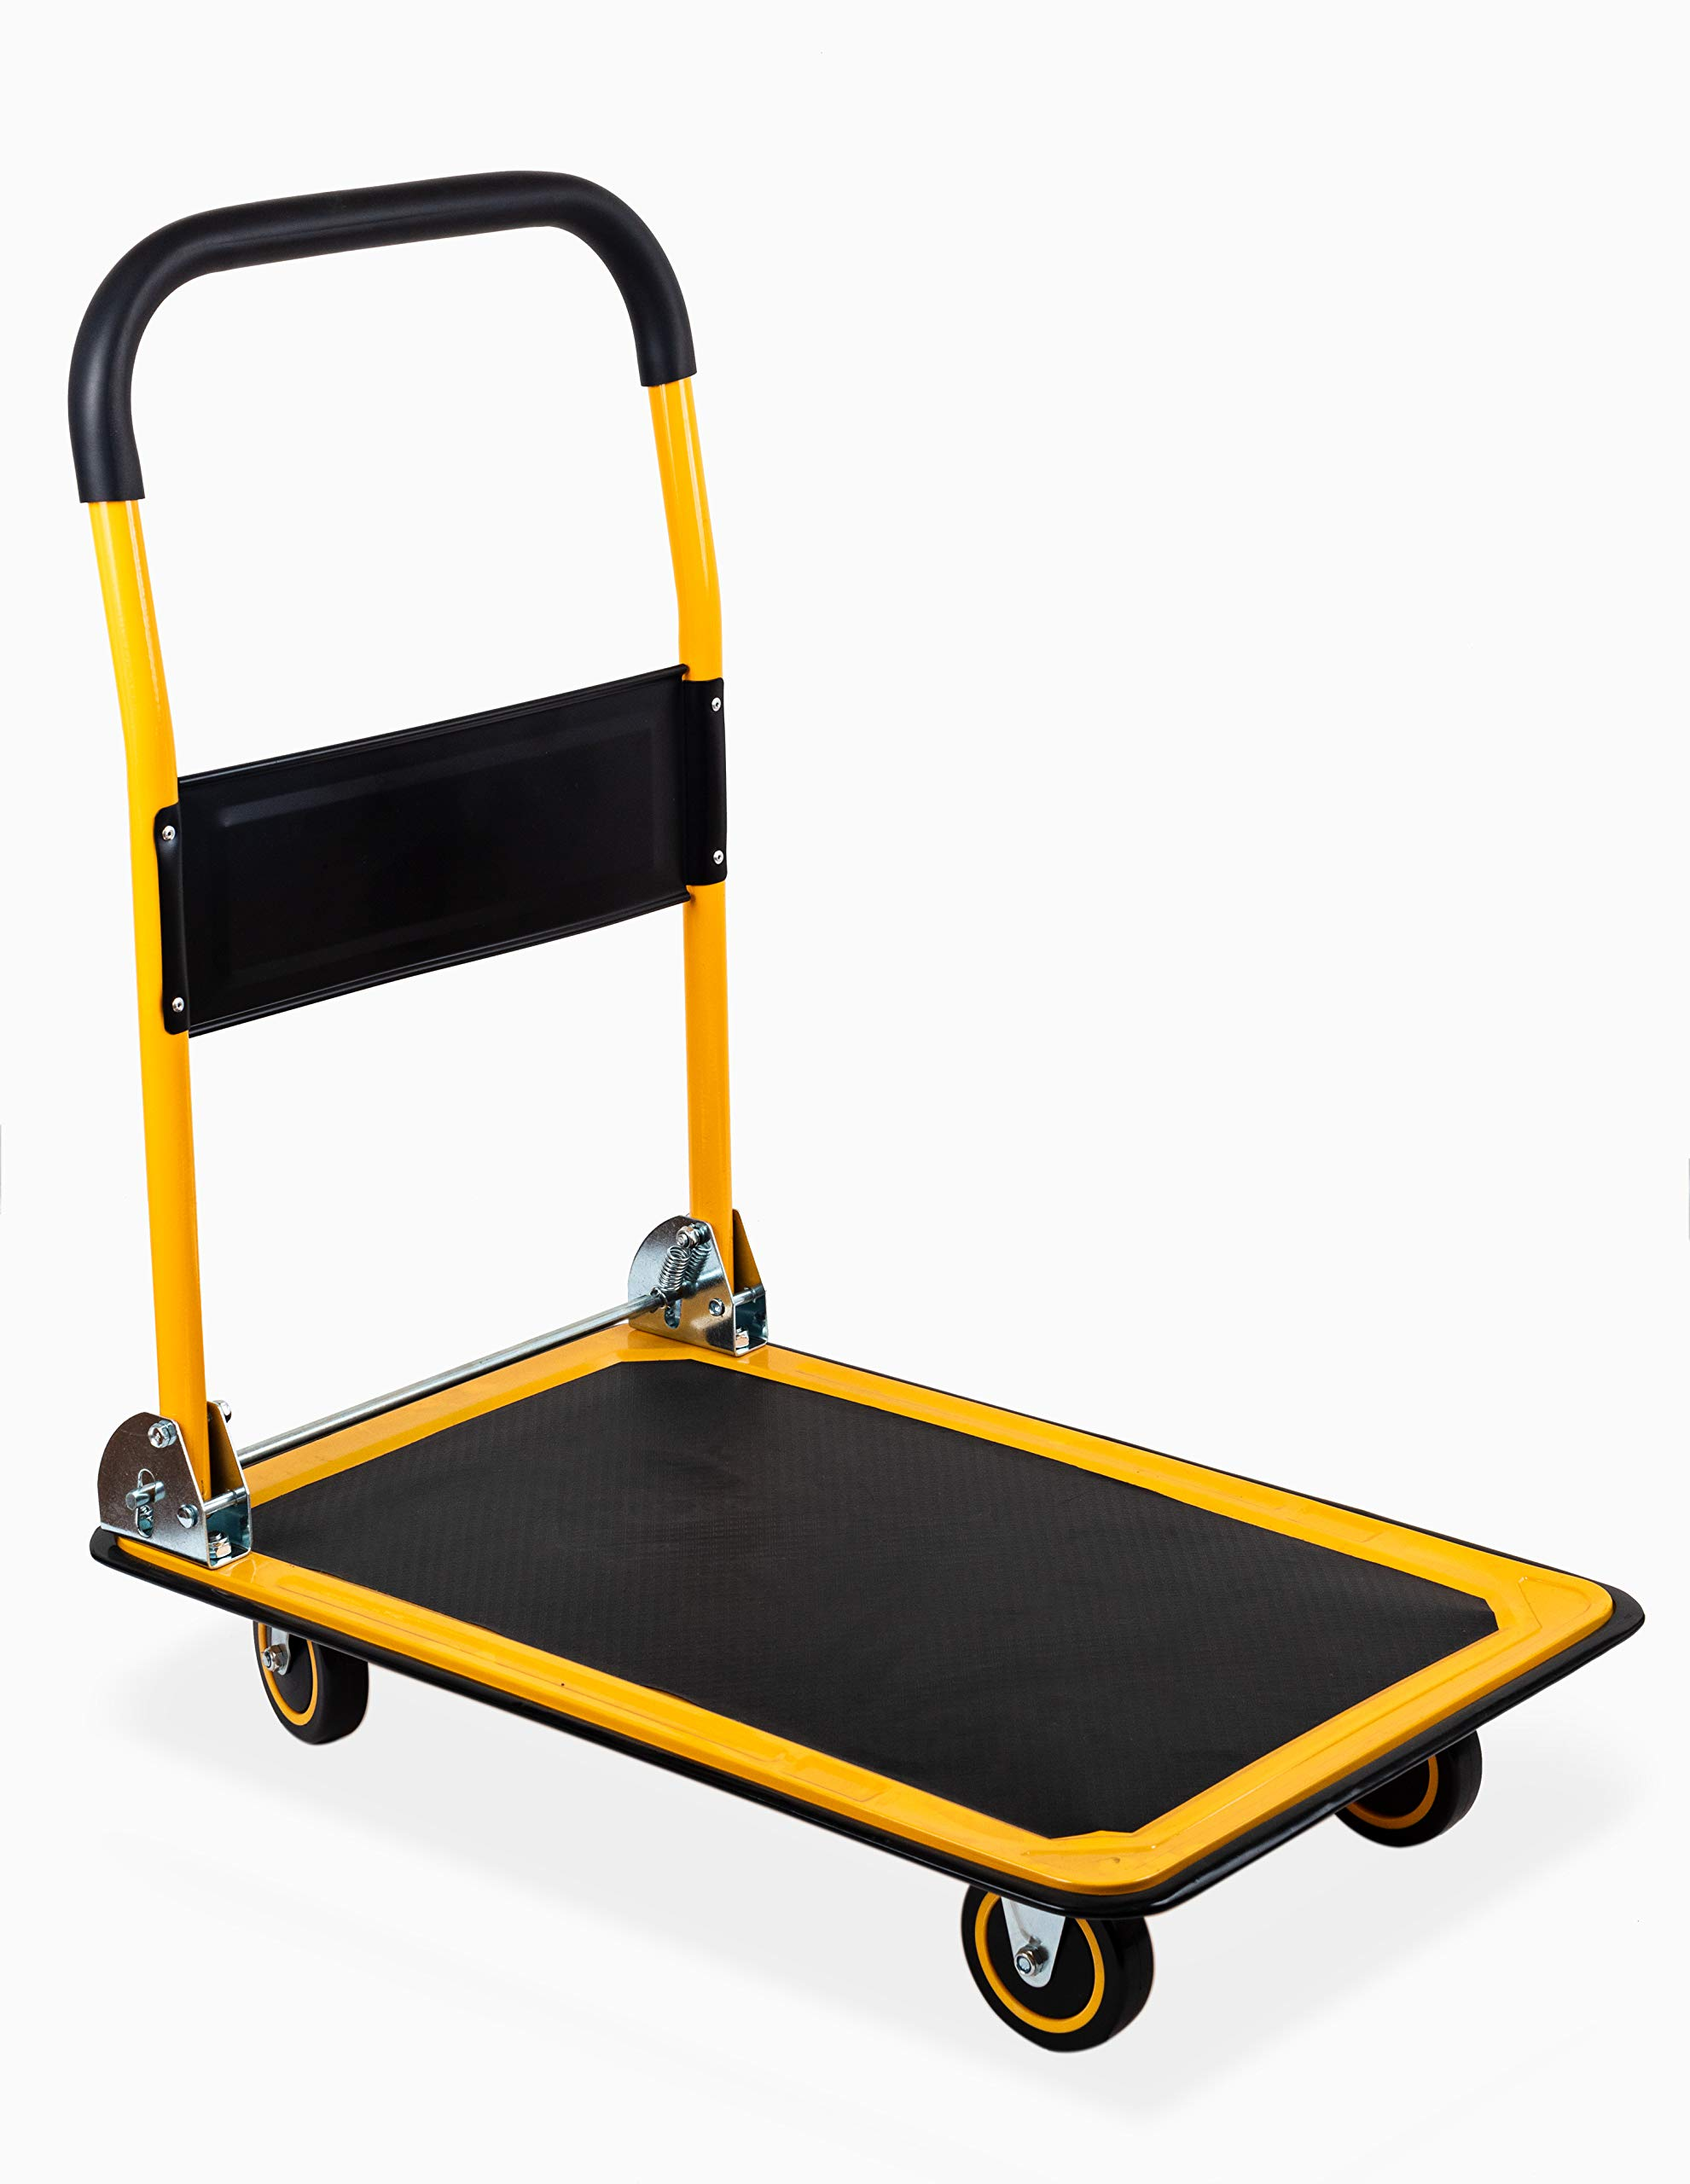 MaxWorks 80877 35.85'' x 24'' x 34.25'' Foldable Platform Truck Push Dolly (660 lb. Weight Capacity with Swivel Wheels)